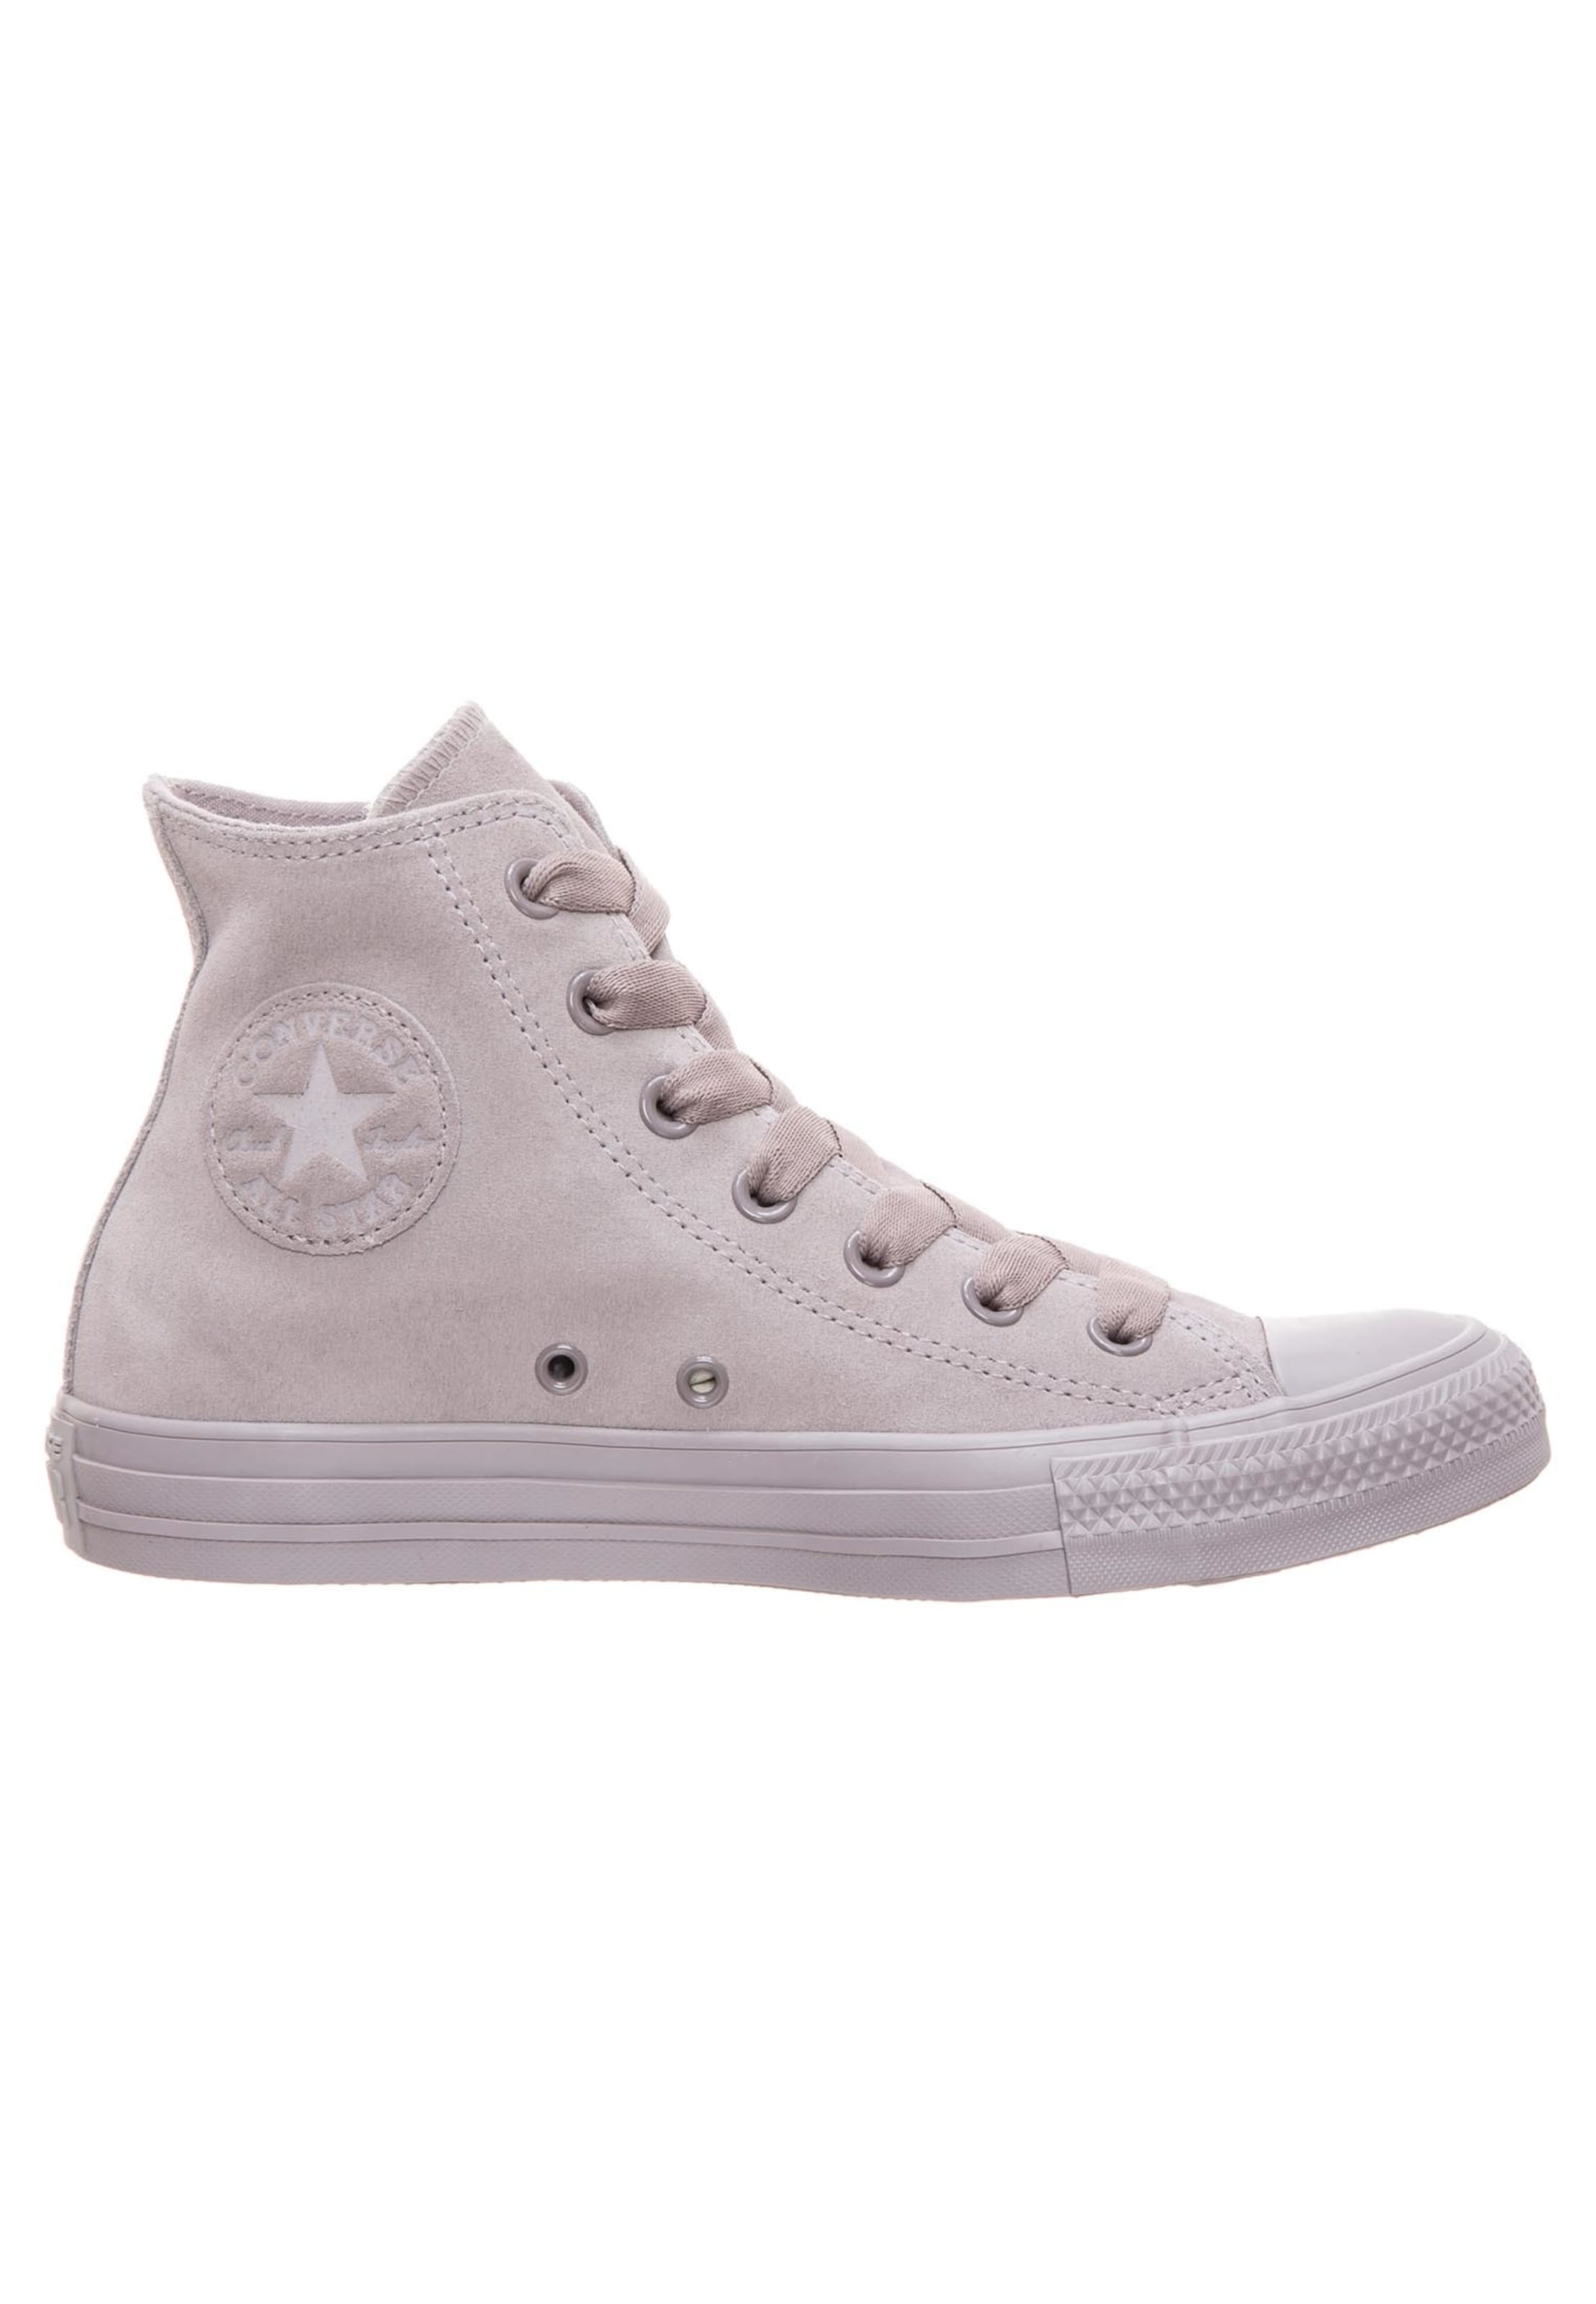 En Taylor Clair Star' Hautes Gris 'chuck Converse Baskets All WIDYeE9H2